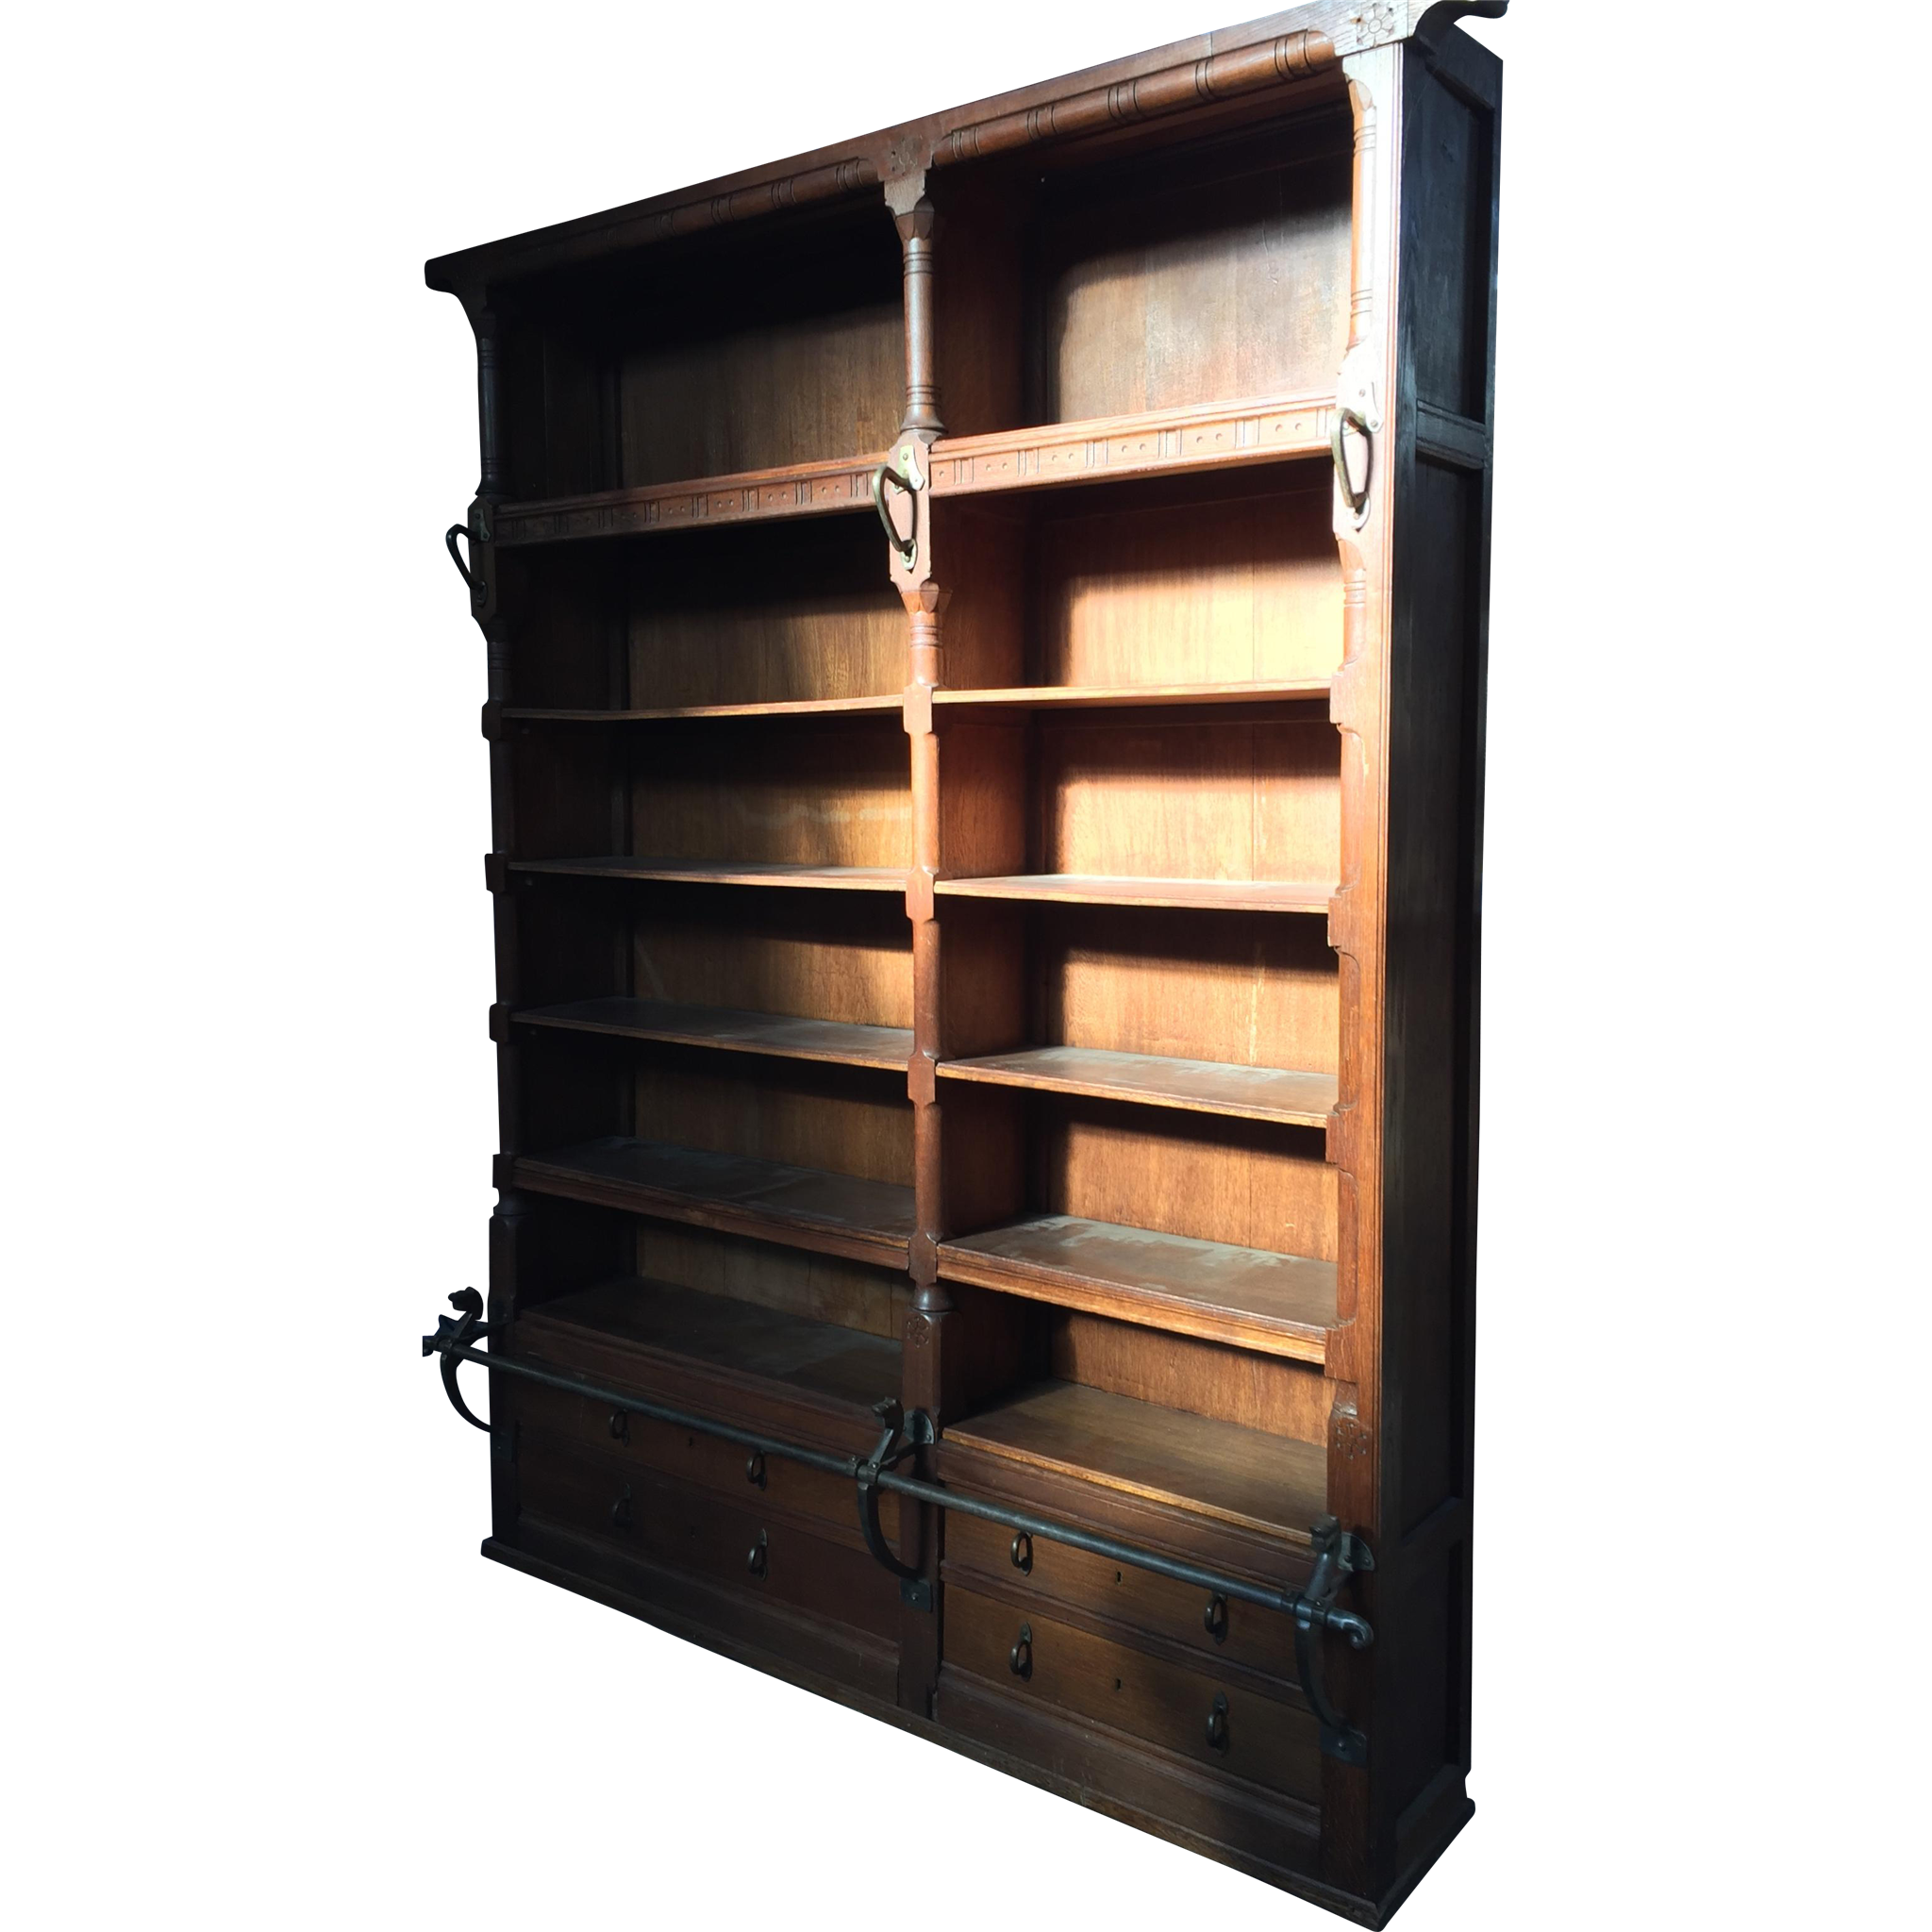 Ca large oak wood bookcase with iron step rod from